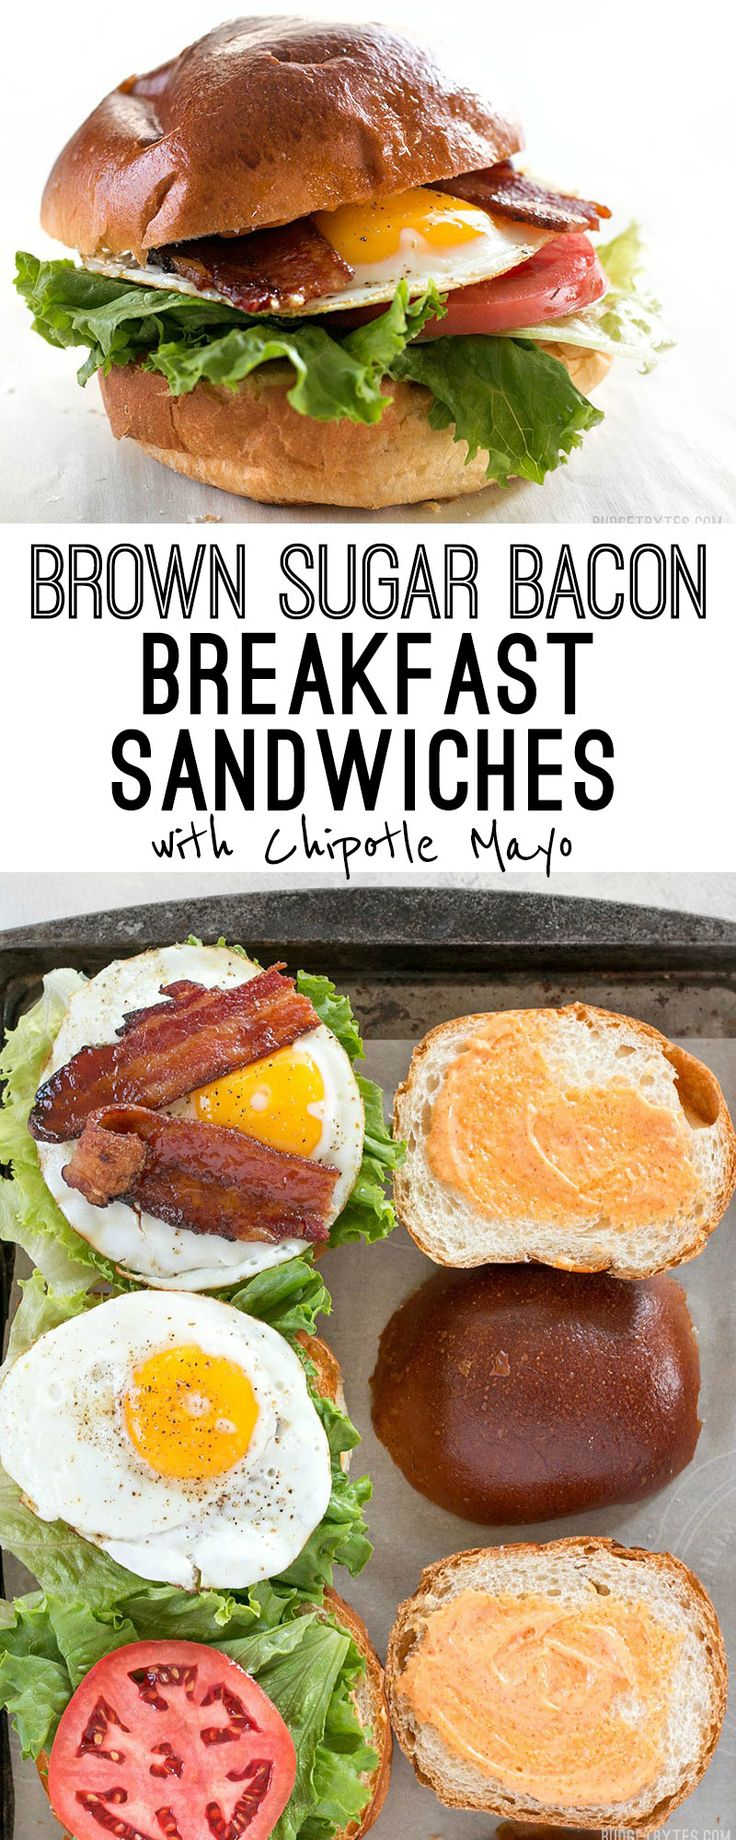 Brown Sugar Bacon Breakfast Sandwiches with Chipotle Mayo are the perfect mix of salty, sweet, and spicy for your weekend brunch. @budgetbytes